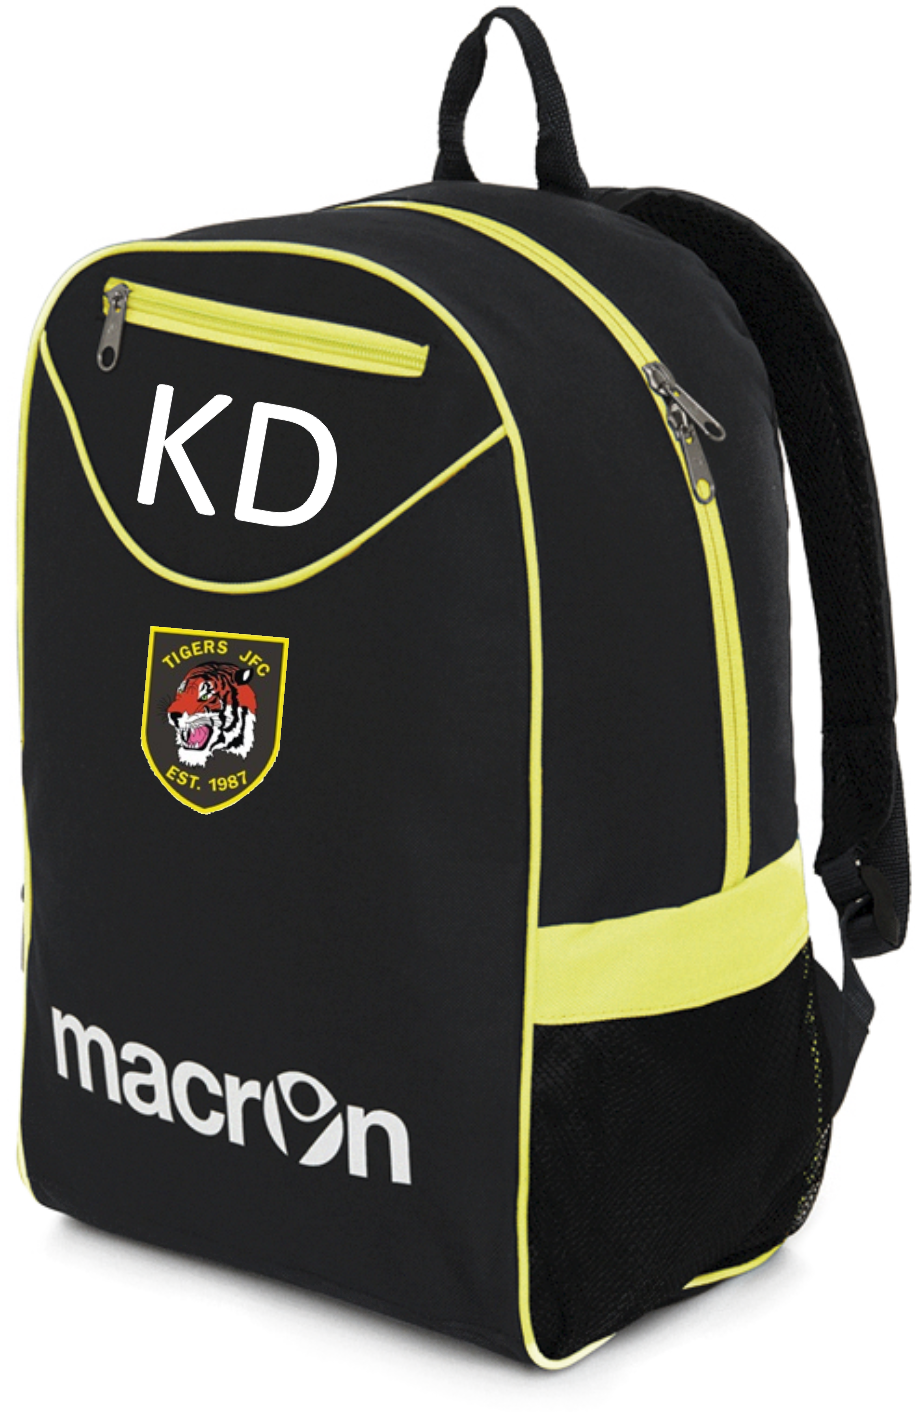 Tigers JFC Backpack